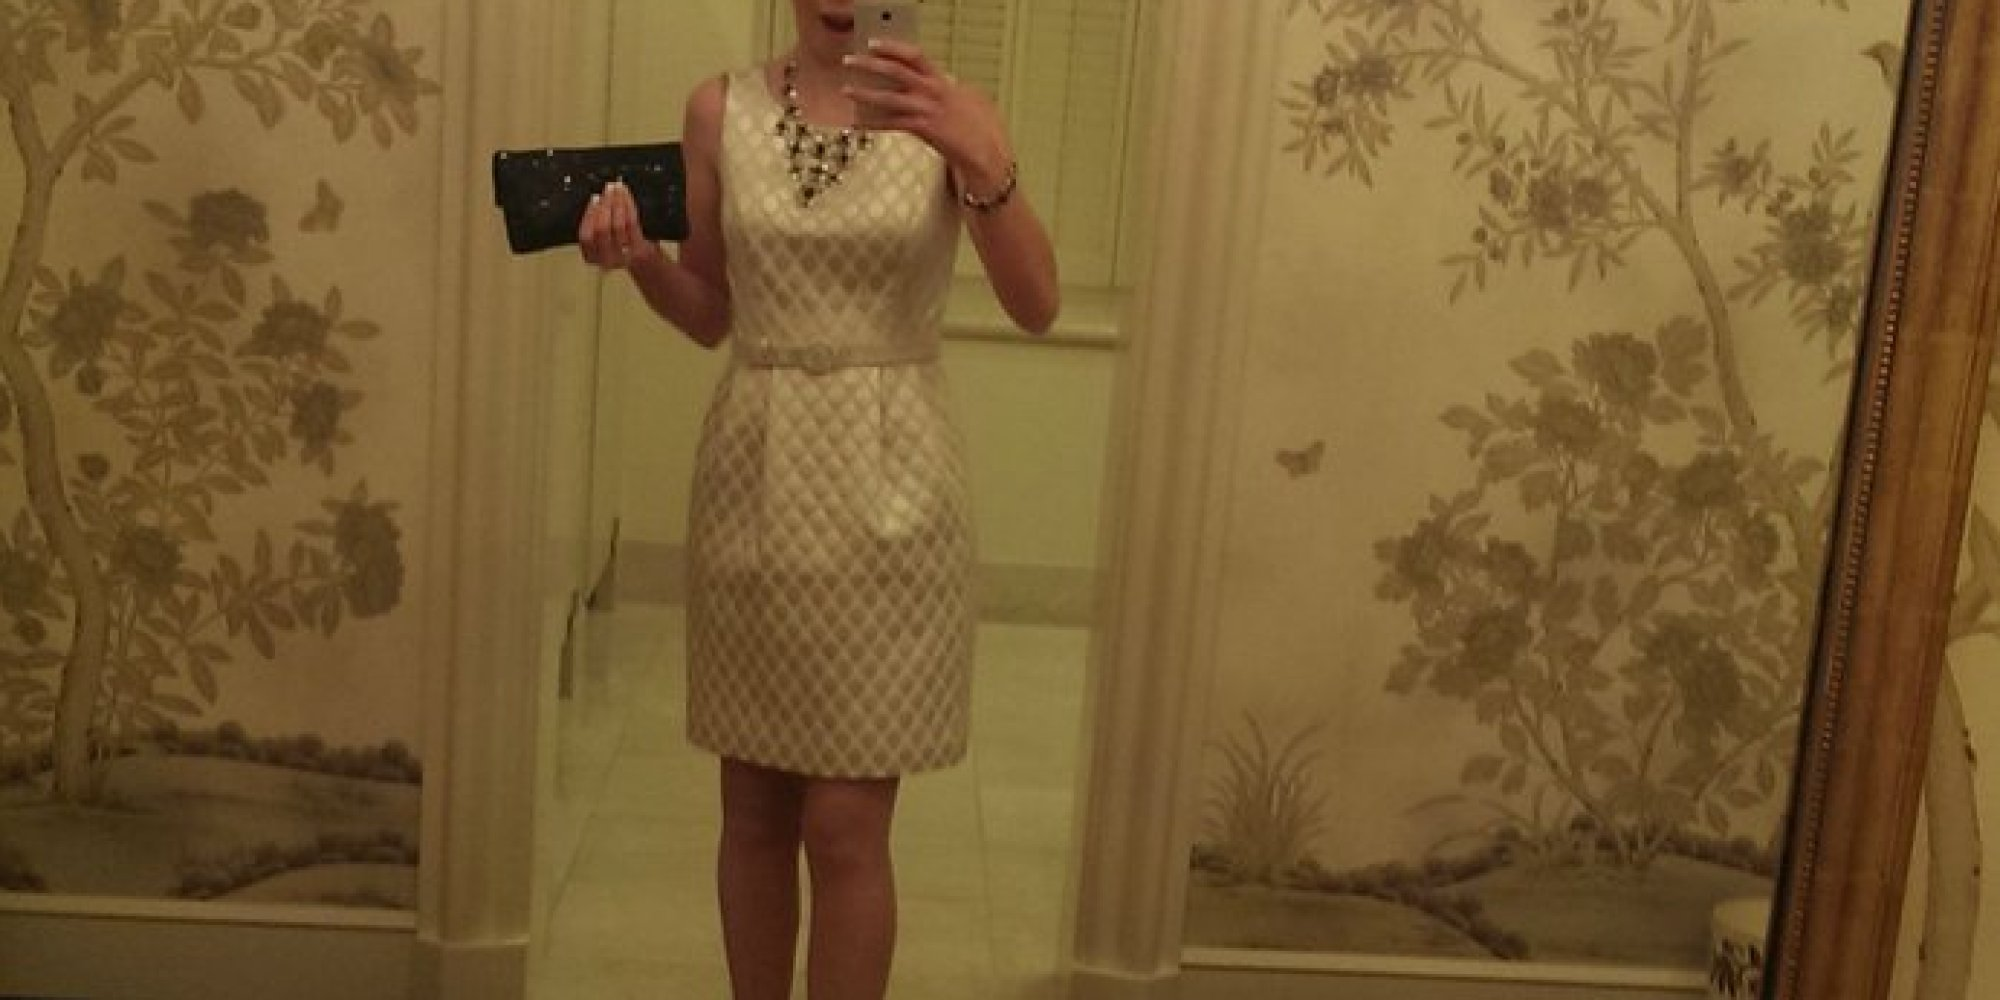 Heres A Woman Supposedly Taking A Selfie In A White House – House Bathroom